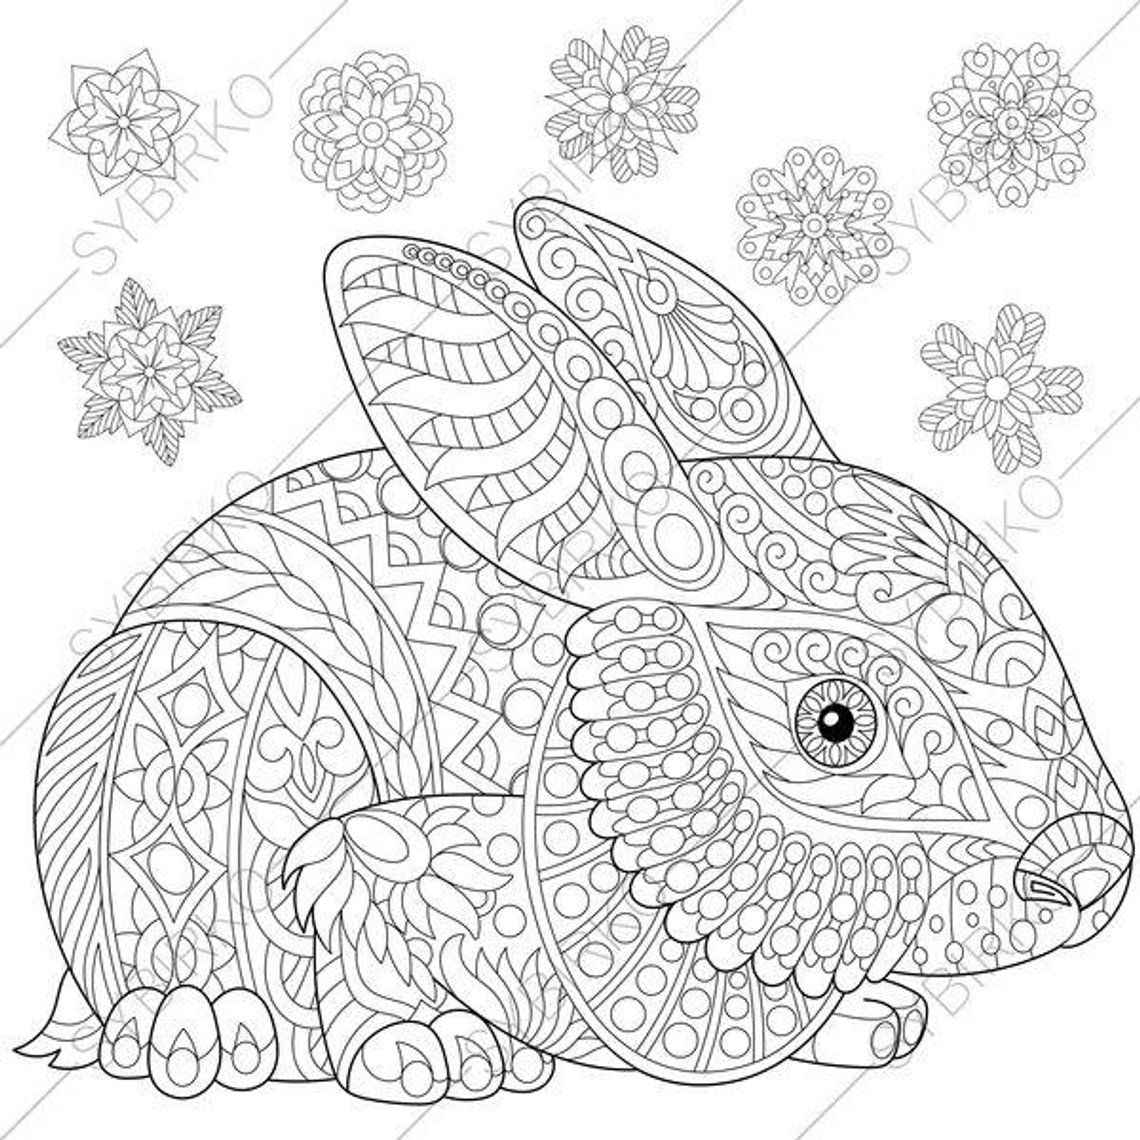 Easter Bunny Rabbit Hare 3 Coloring Pages Animal Coloring Etsy Bunny Coloring Pages Easter Coloring Pages Animal Coloring Books